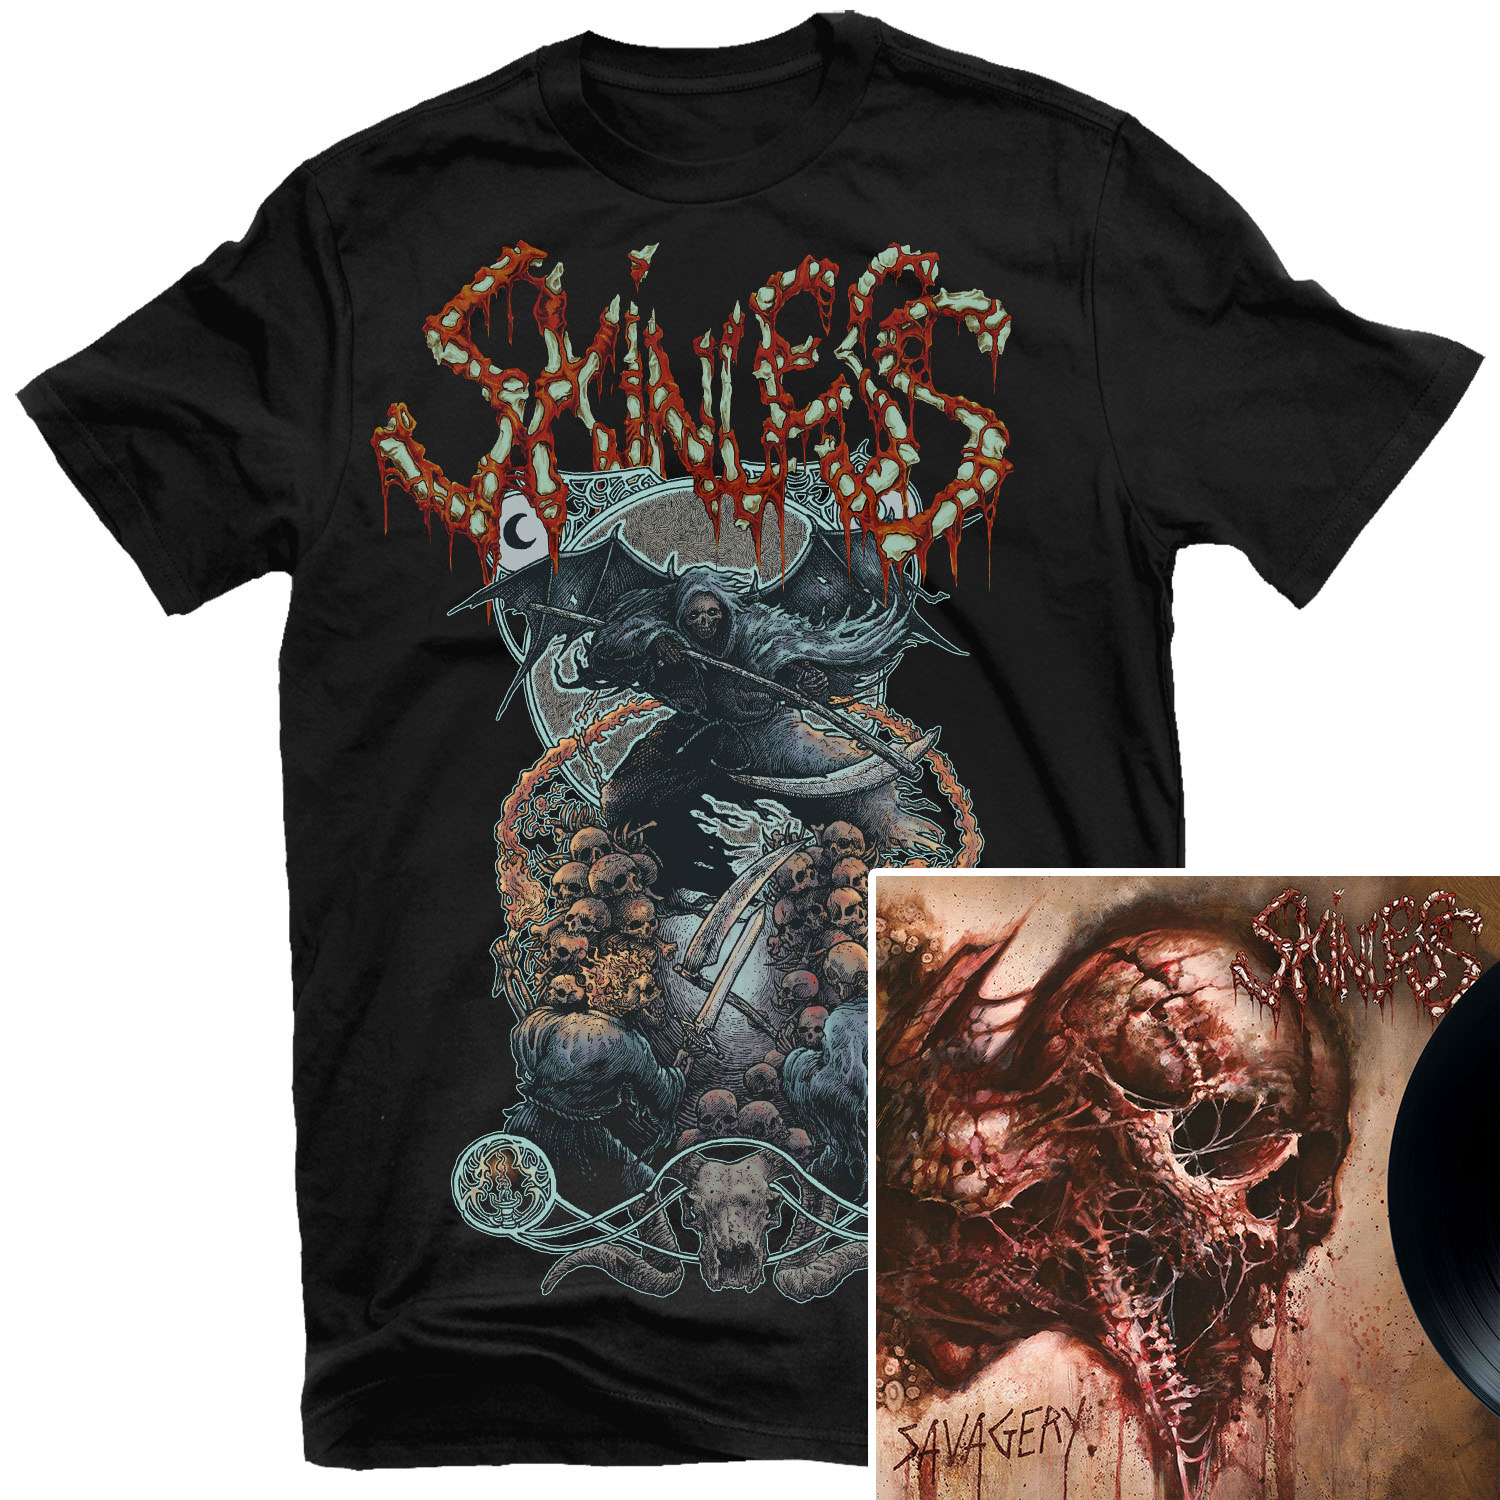 Savagery T Shirt + LP Bundle